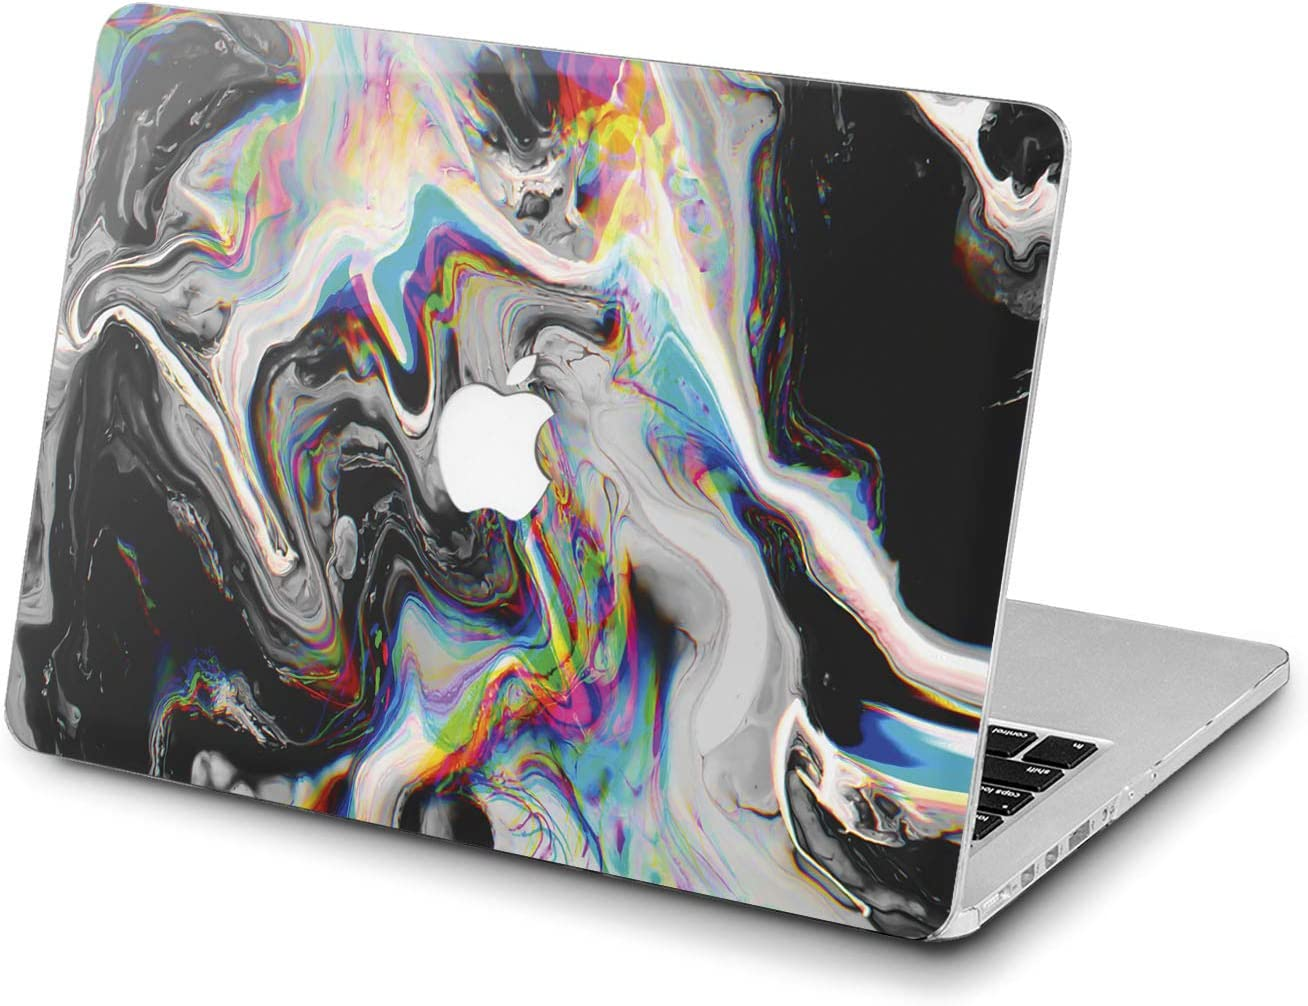 Lex Altern Hard Case for Apple MacBook Pro 15 Air 13 inch Mac Retina 12 11 2020 2019 2018 2017 2016 Abstract Cover Plastic Art Paint Touch Bar Rainbow Black Trippy Women Holographic Shell Glitch